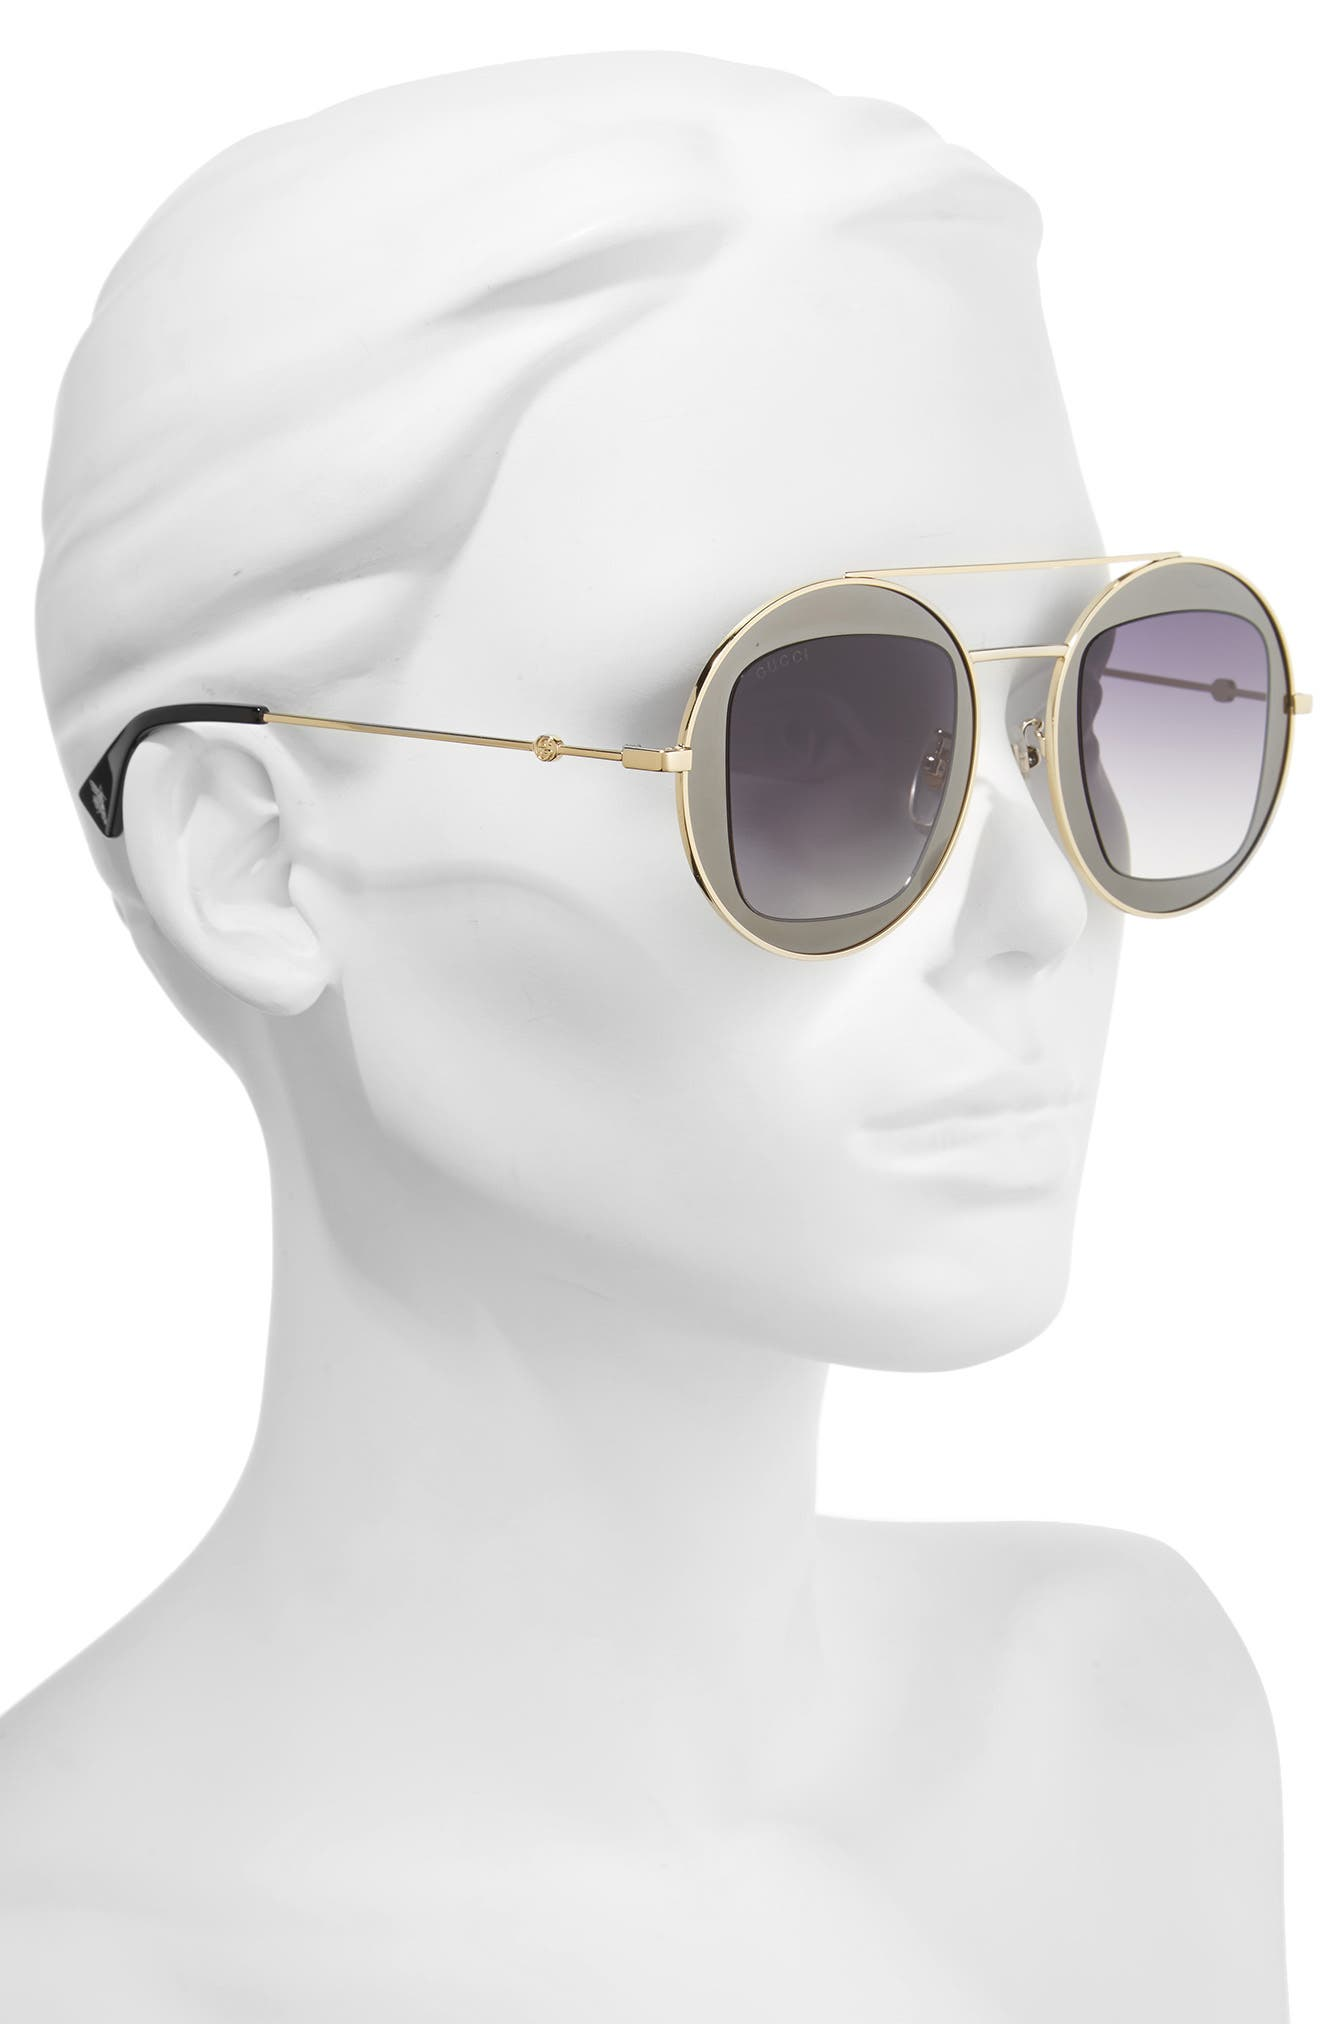 47mm Round Sunglasses,                             Alternate thumbnail 2, color,                             Matte Gold/ Grey